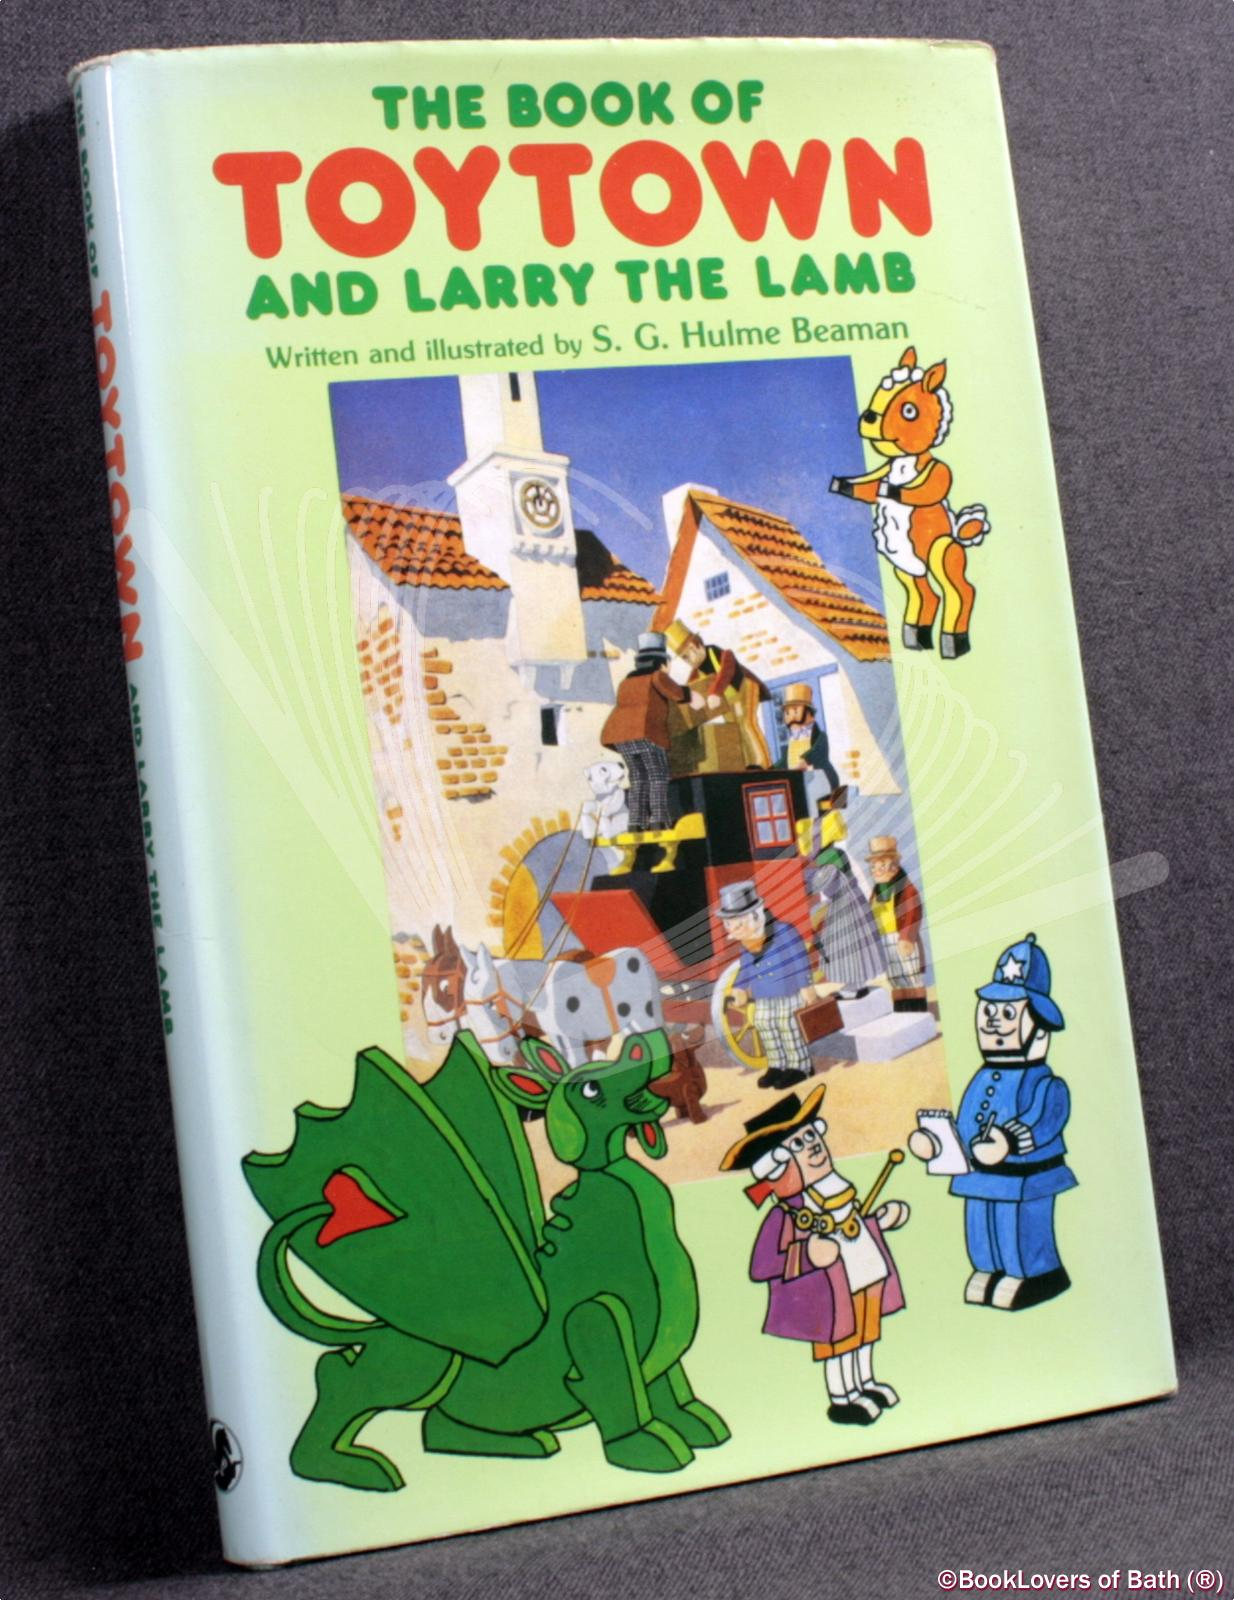 The Book of Toytown and Larry the Lamb: With a Biographical Note About the Author by Hendrik Baker - S. G. [Sydney George] Hulme Beaman